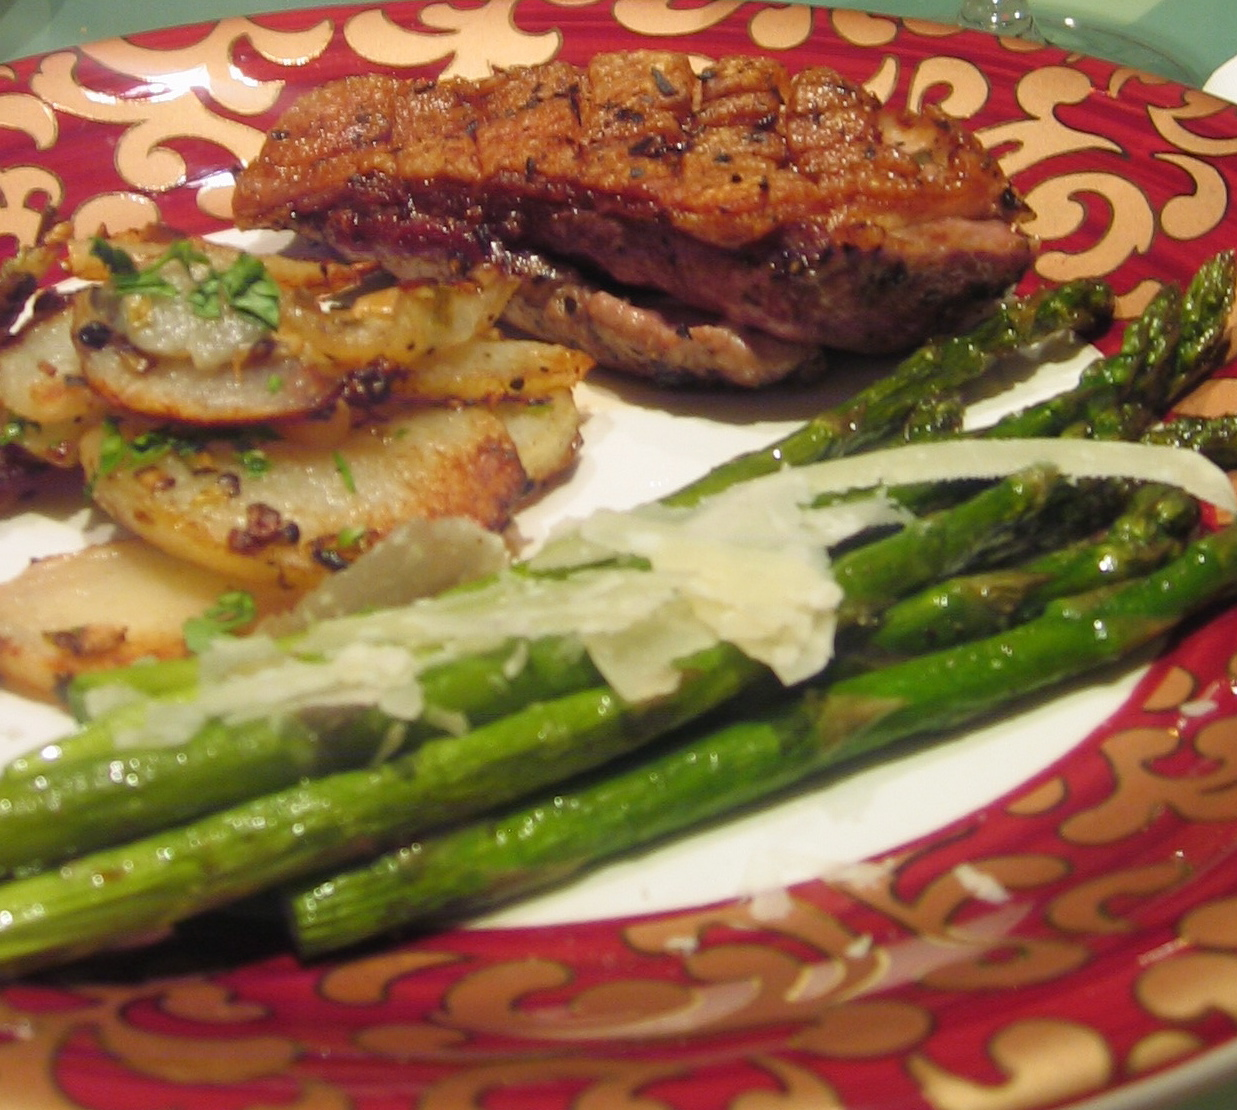 Tarragon Seared Duck Breast; Potatoes Sauteed in Duck Fat; Roasted Asparagus w/ Shaved Pecorino & Baby Chocolate Souffle